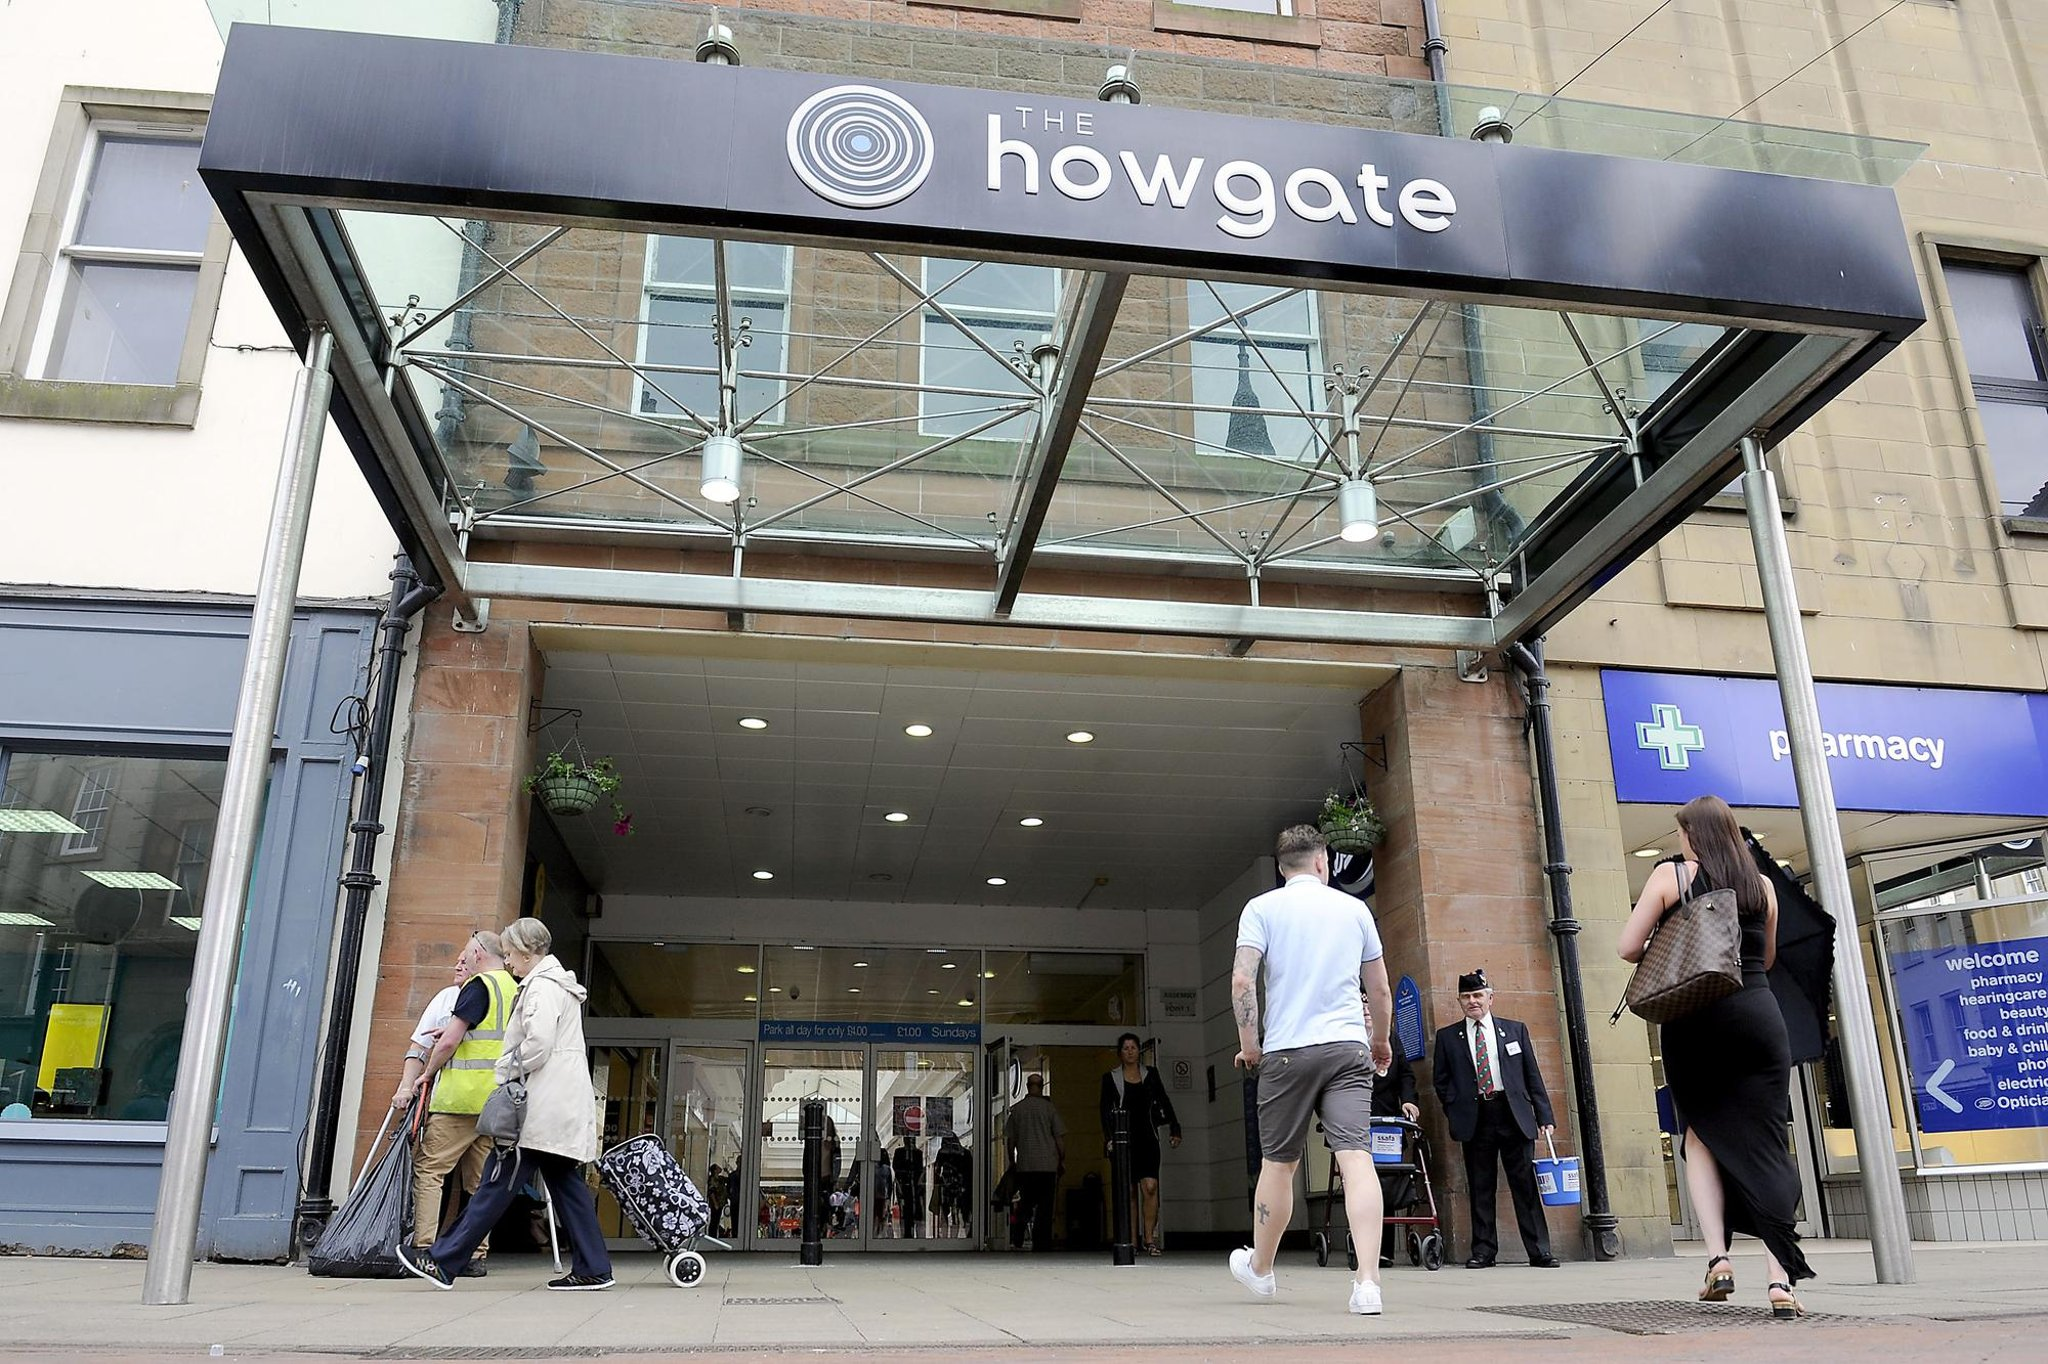 The Howgate Shopping Centre to turn off music at Falkirk facility to support elderly visitors